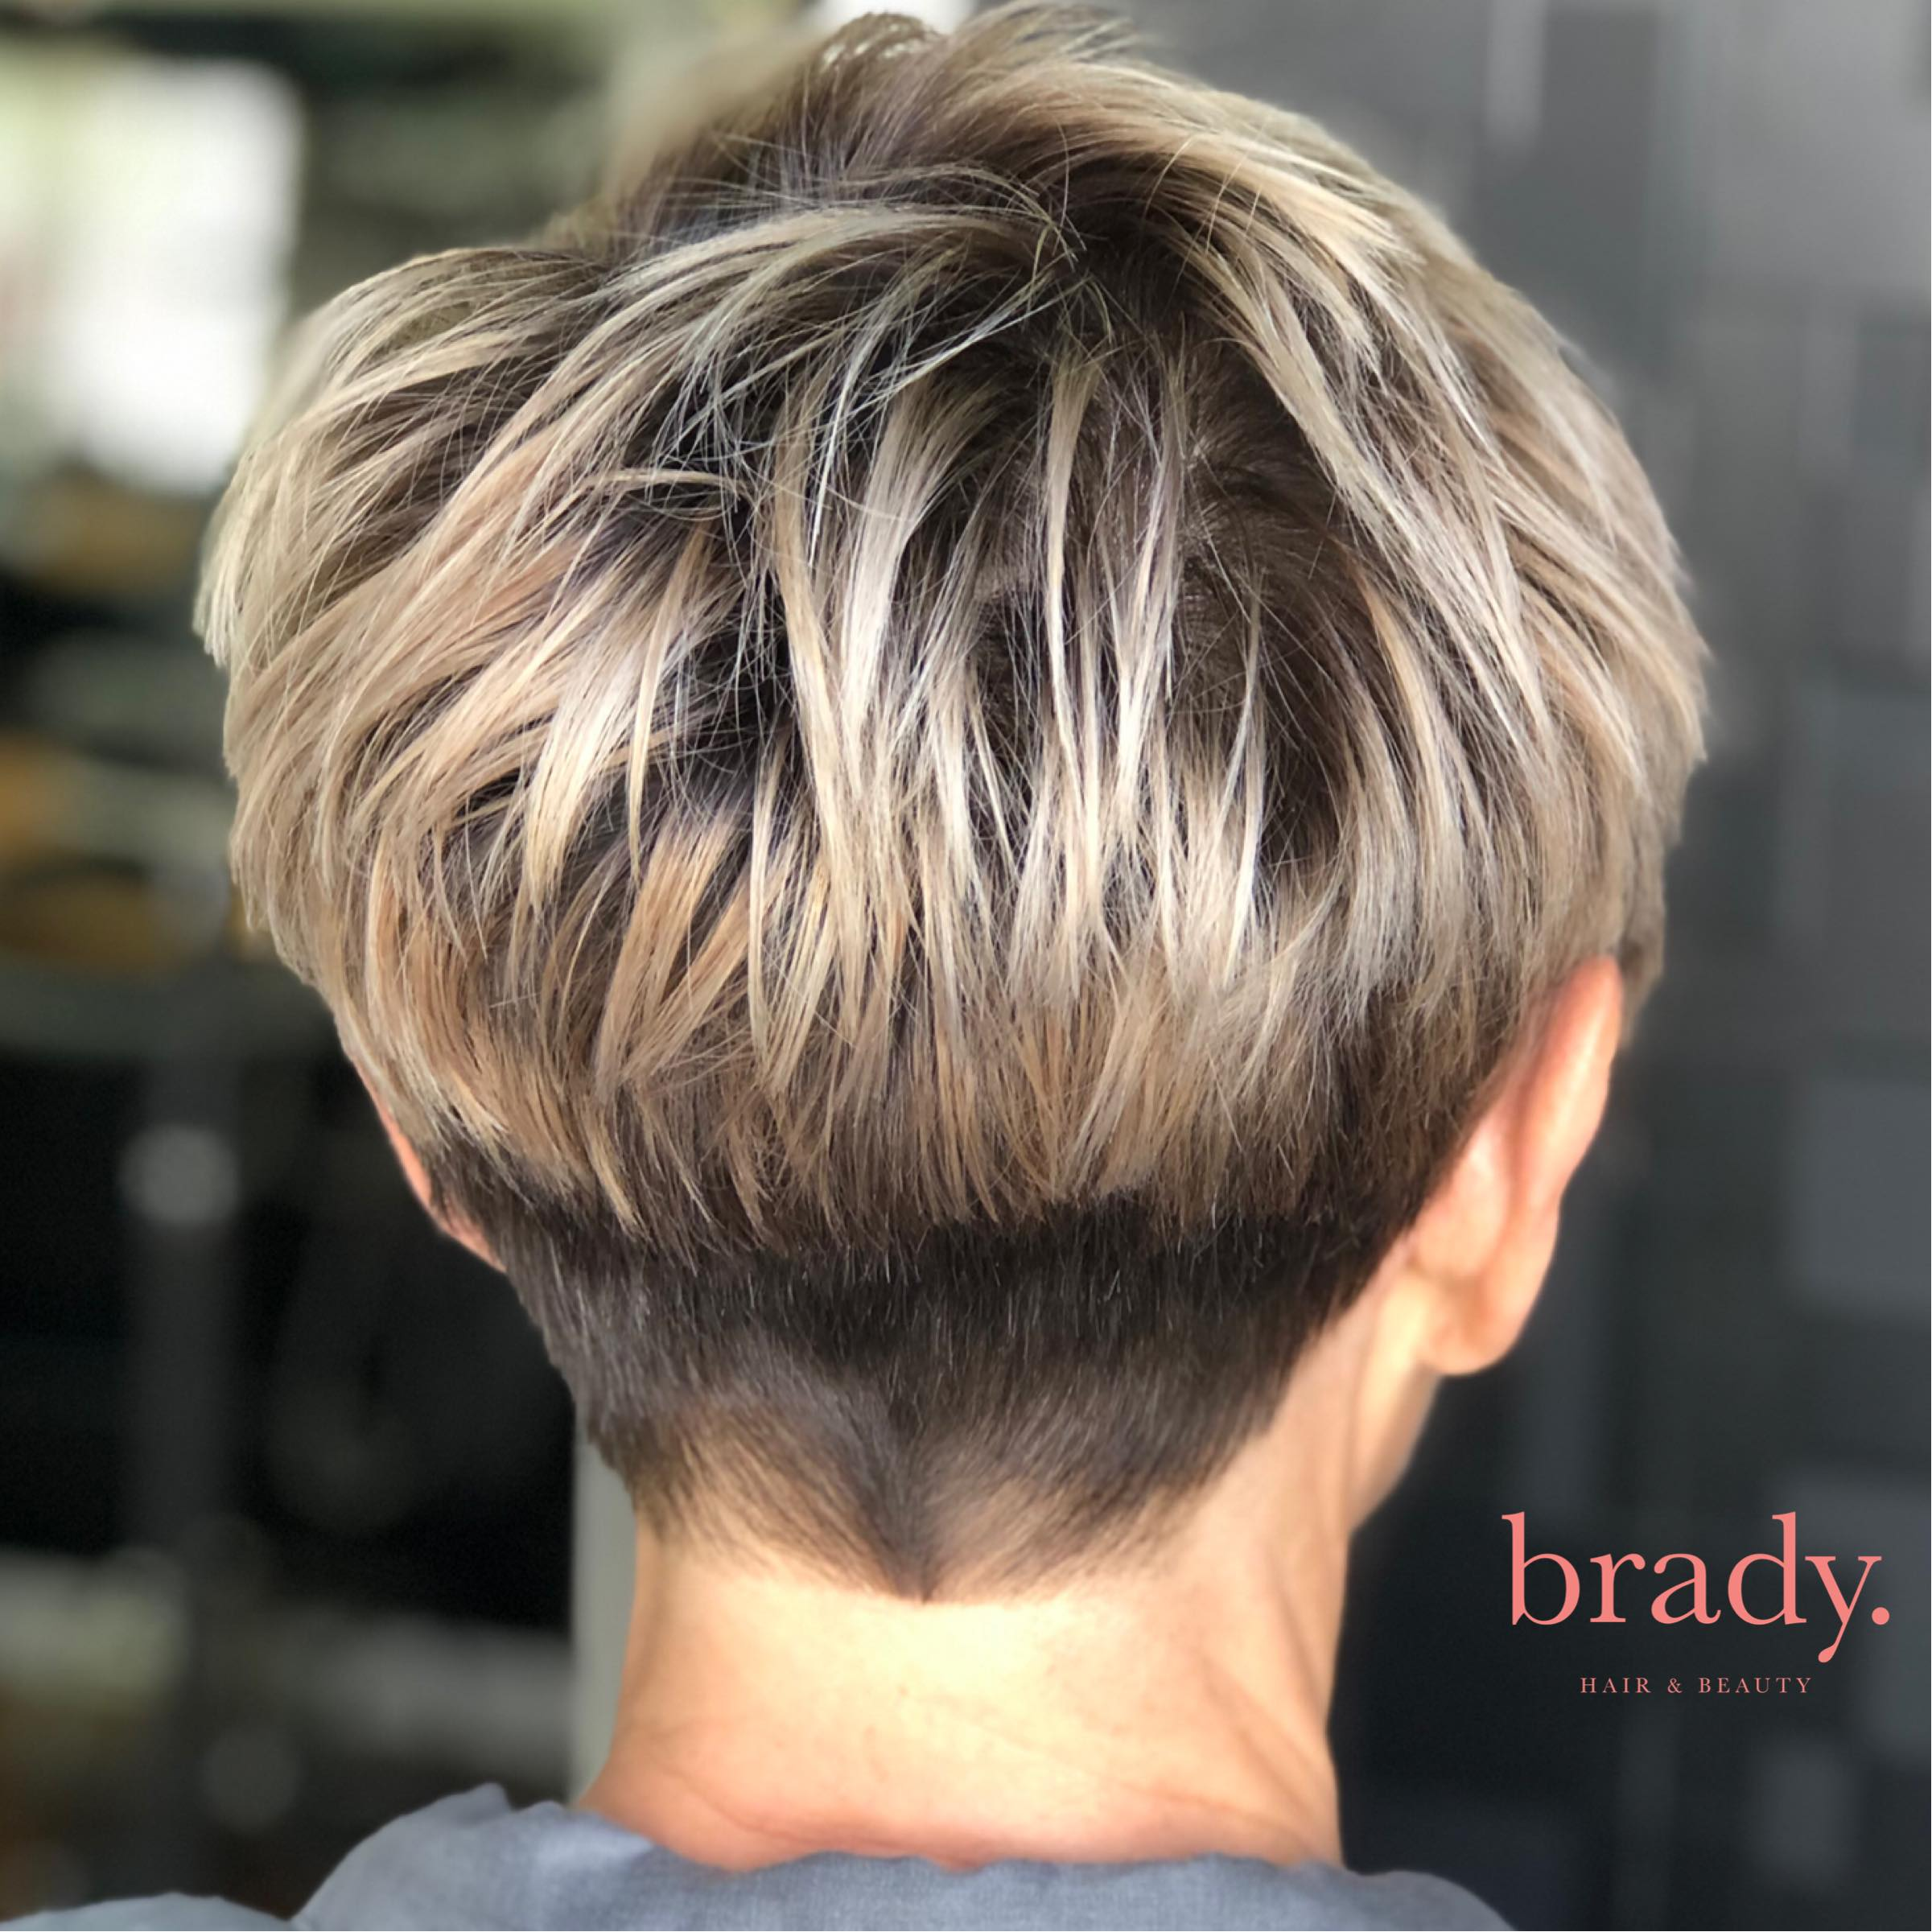 Photo of woman with short pixie style haircut, styled by Brady. Hair & Beauty, Toowong, Brisbane.